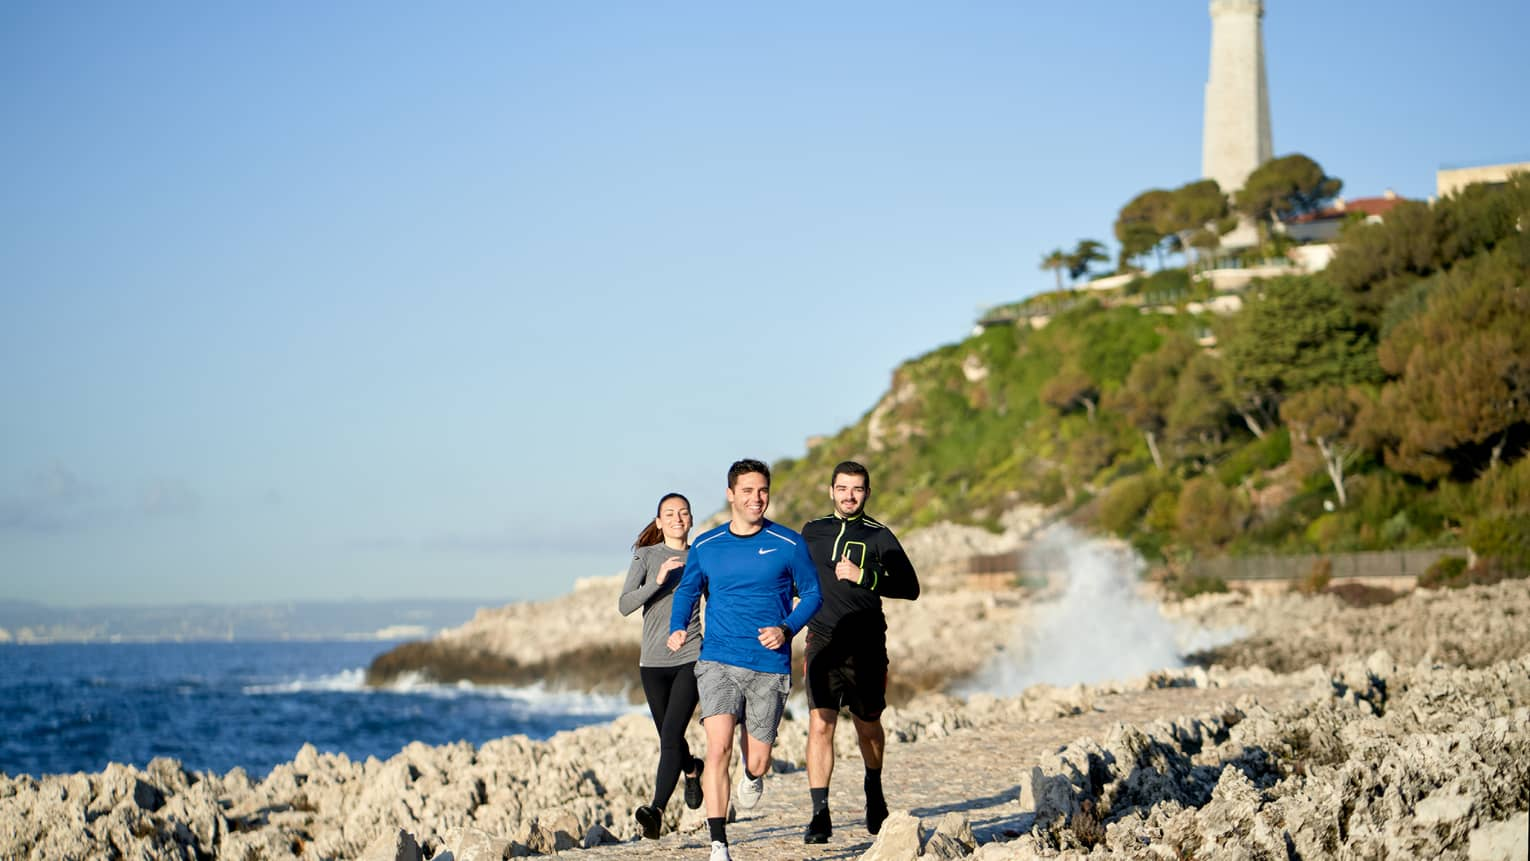 Three people jogging, smiling, on rocky trail beside the sea, lighthouse in backdrop